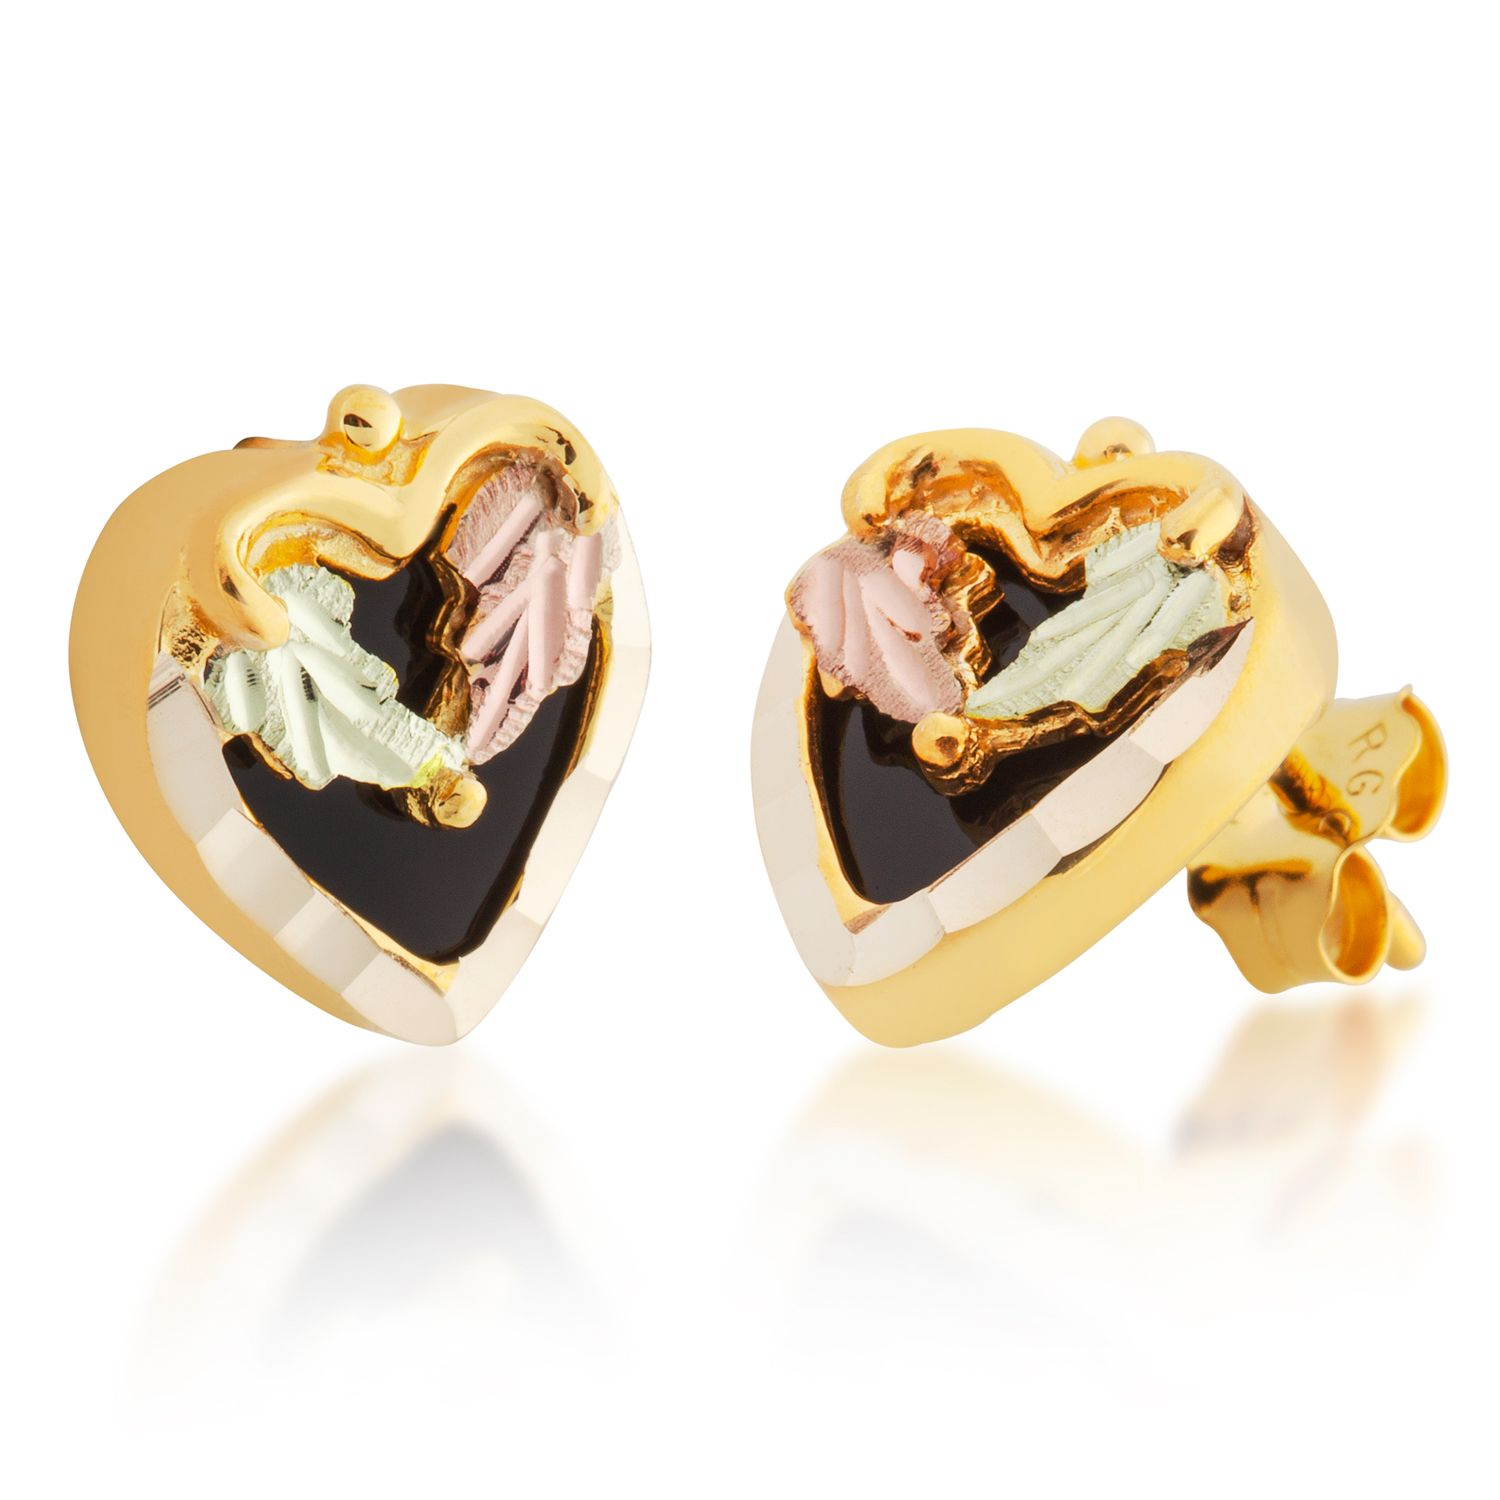 Product Name Black Hills Gold Ladies Genuine Onyx Heart Earrings With Hammered Detailing I Black Hills Gold Jewelry Black Hills Gold Earrings Black Hills Gold